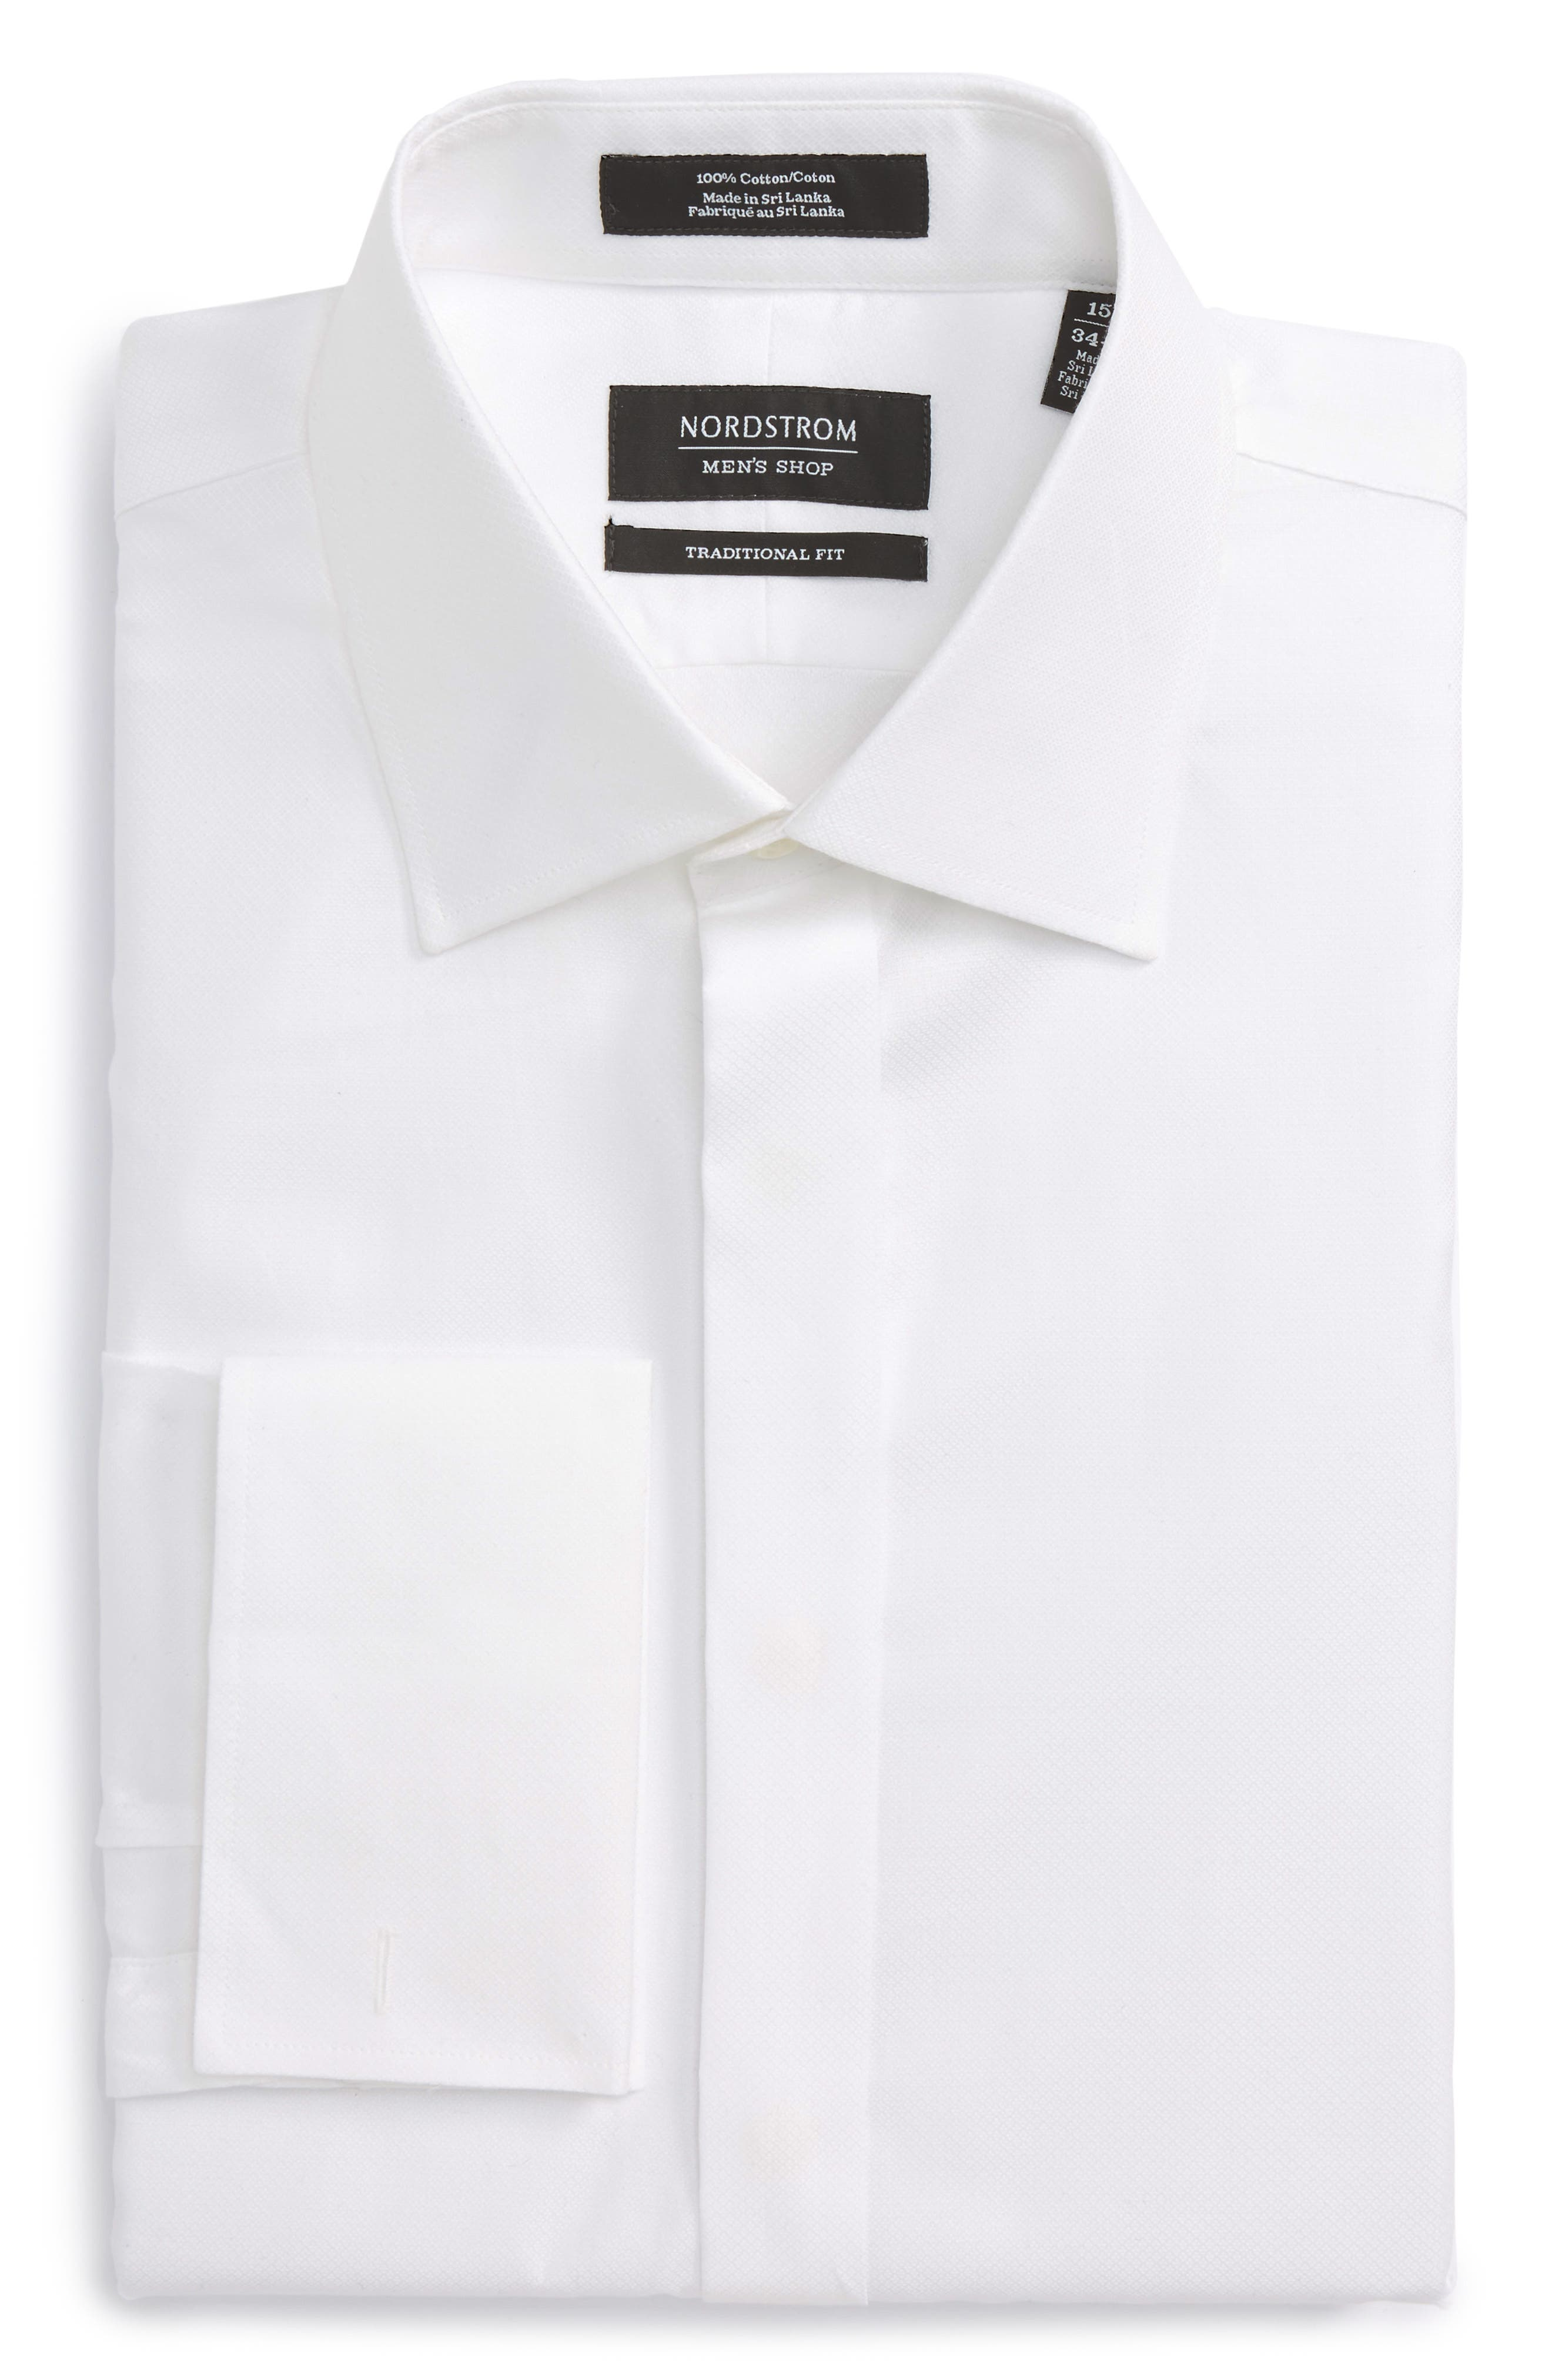 Nordstrom Men's Shop Traditional Fit Tuxedo Shirt